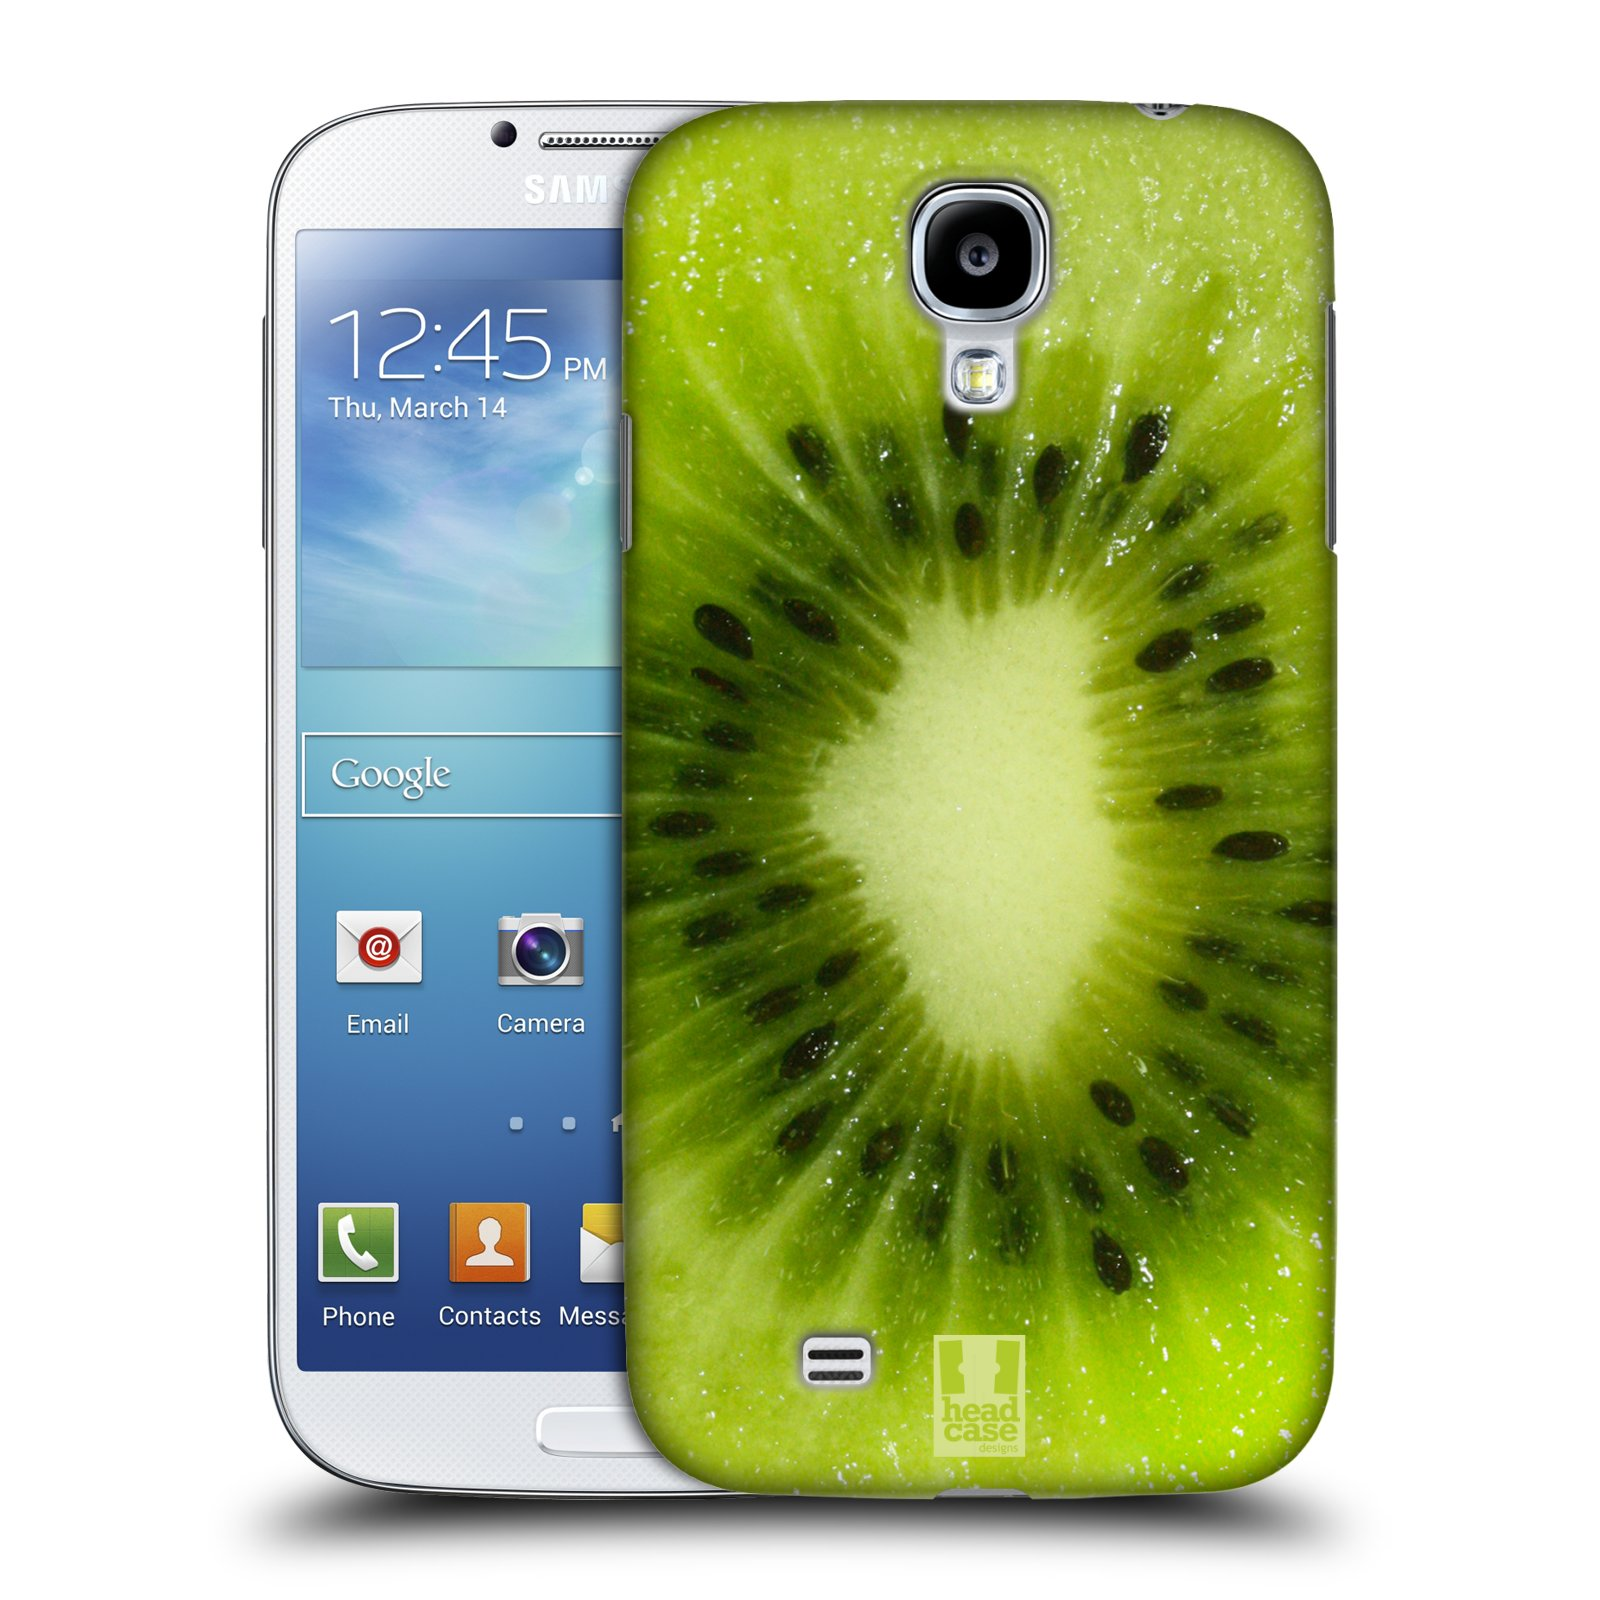 HEAD CASE DESIGNS FRUITYLICIOUS CASE COVER FOR SAMSUNG GALAXY S4 I9500